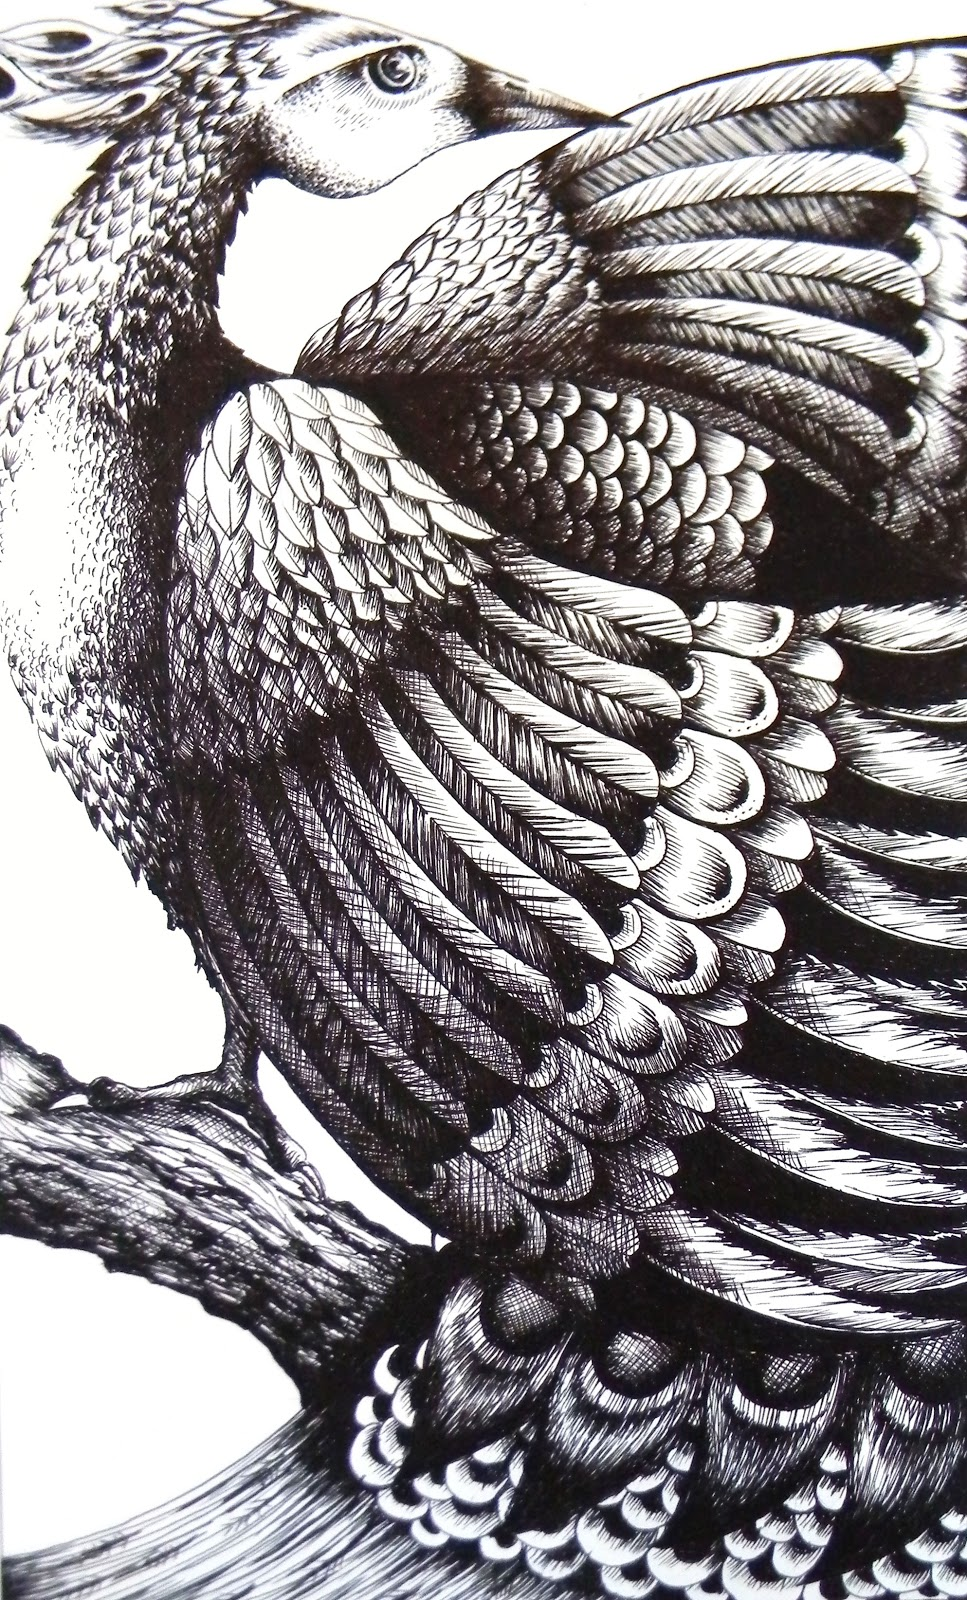 Pen And Ink Illustrations : Mangle prints pen and ink drawing